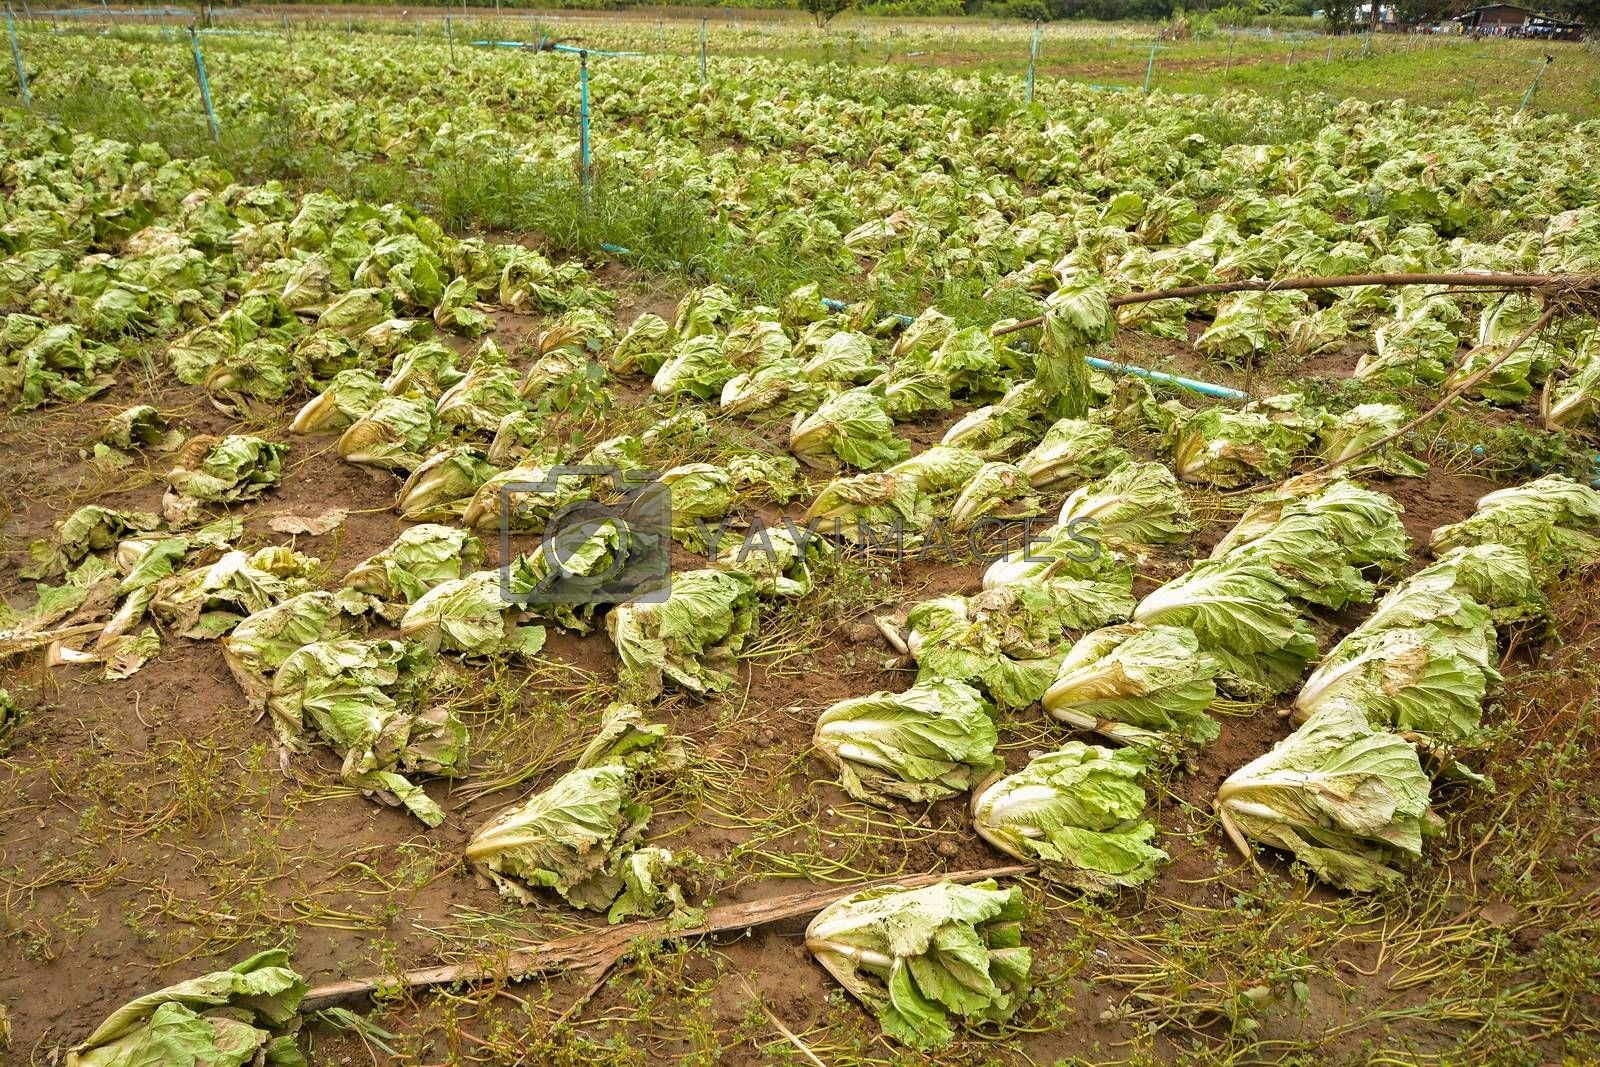 Agricultural land affected by flooding. Flooded field. The consequences of rain disaster or Water flood. Agriculture and farming of White Cabbage. Natural disaster and crop loss risks.